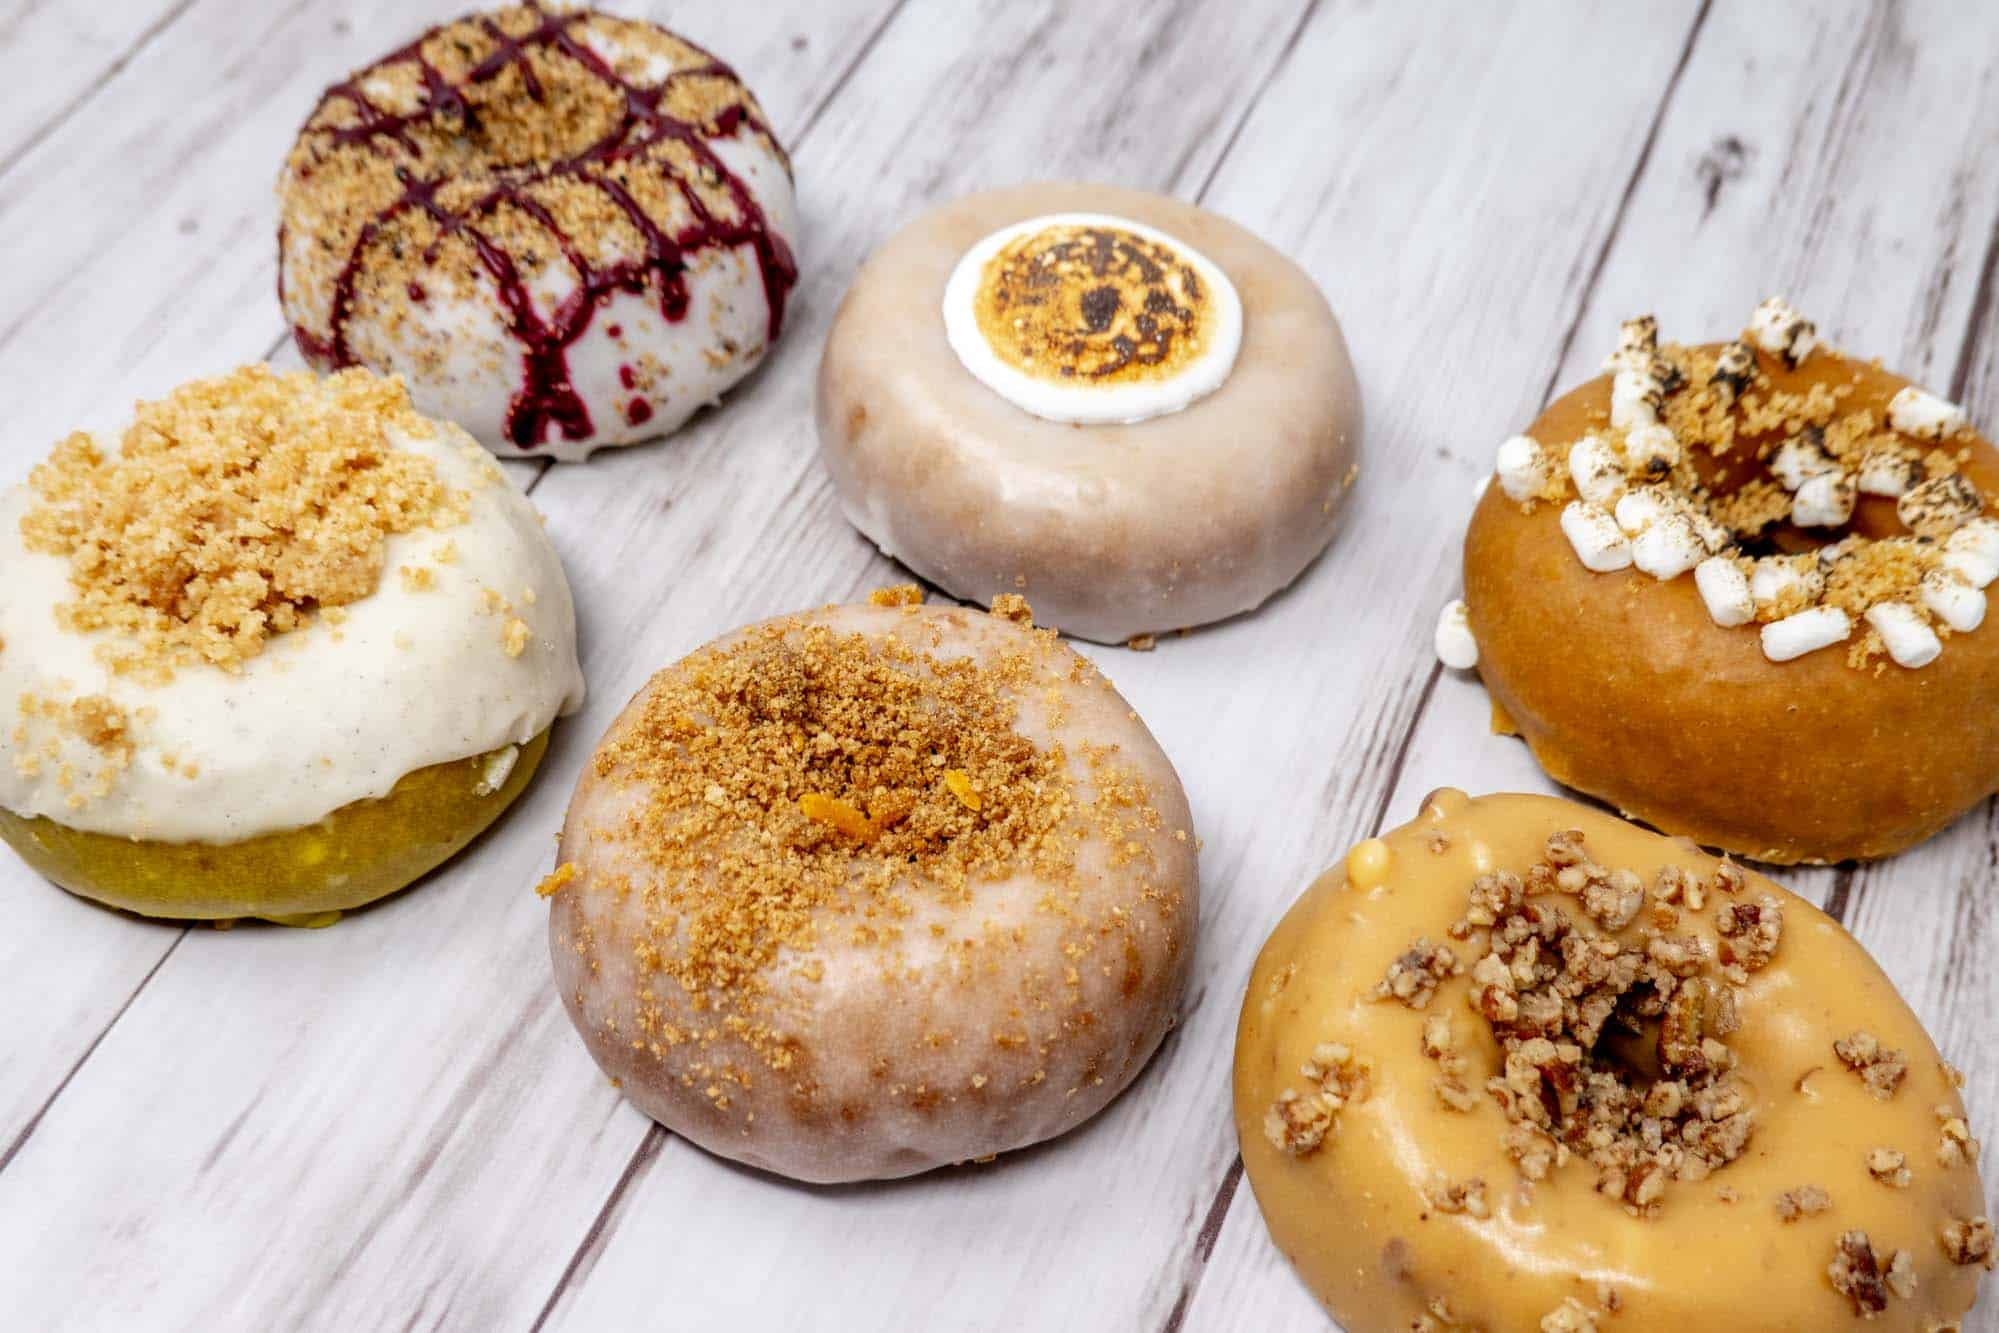 Six donuts with different flavors and toppings on a table